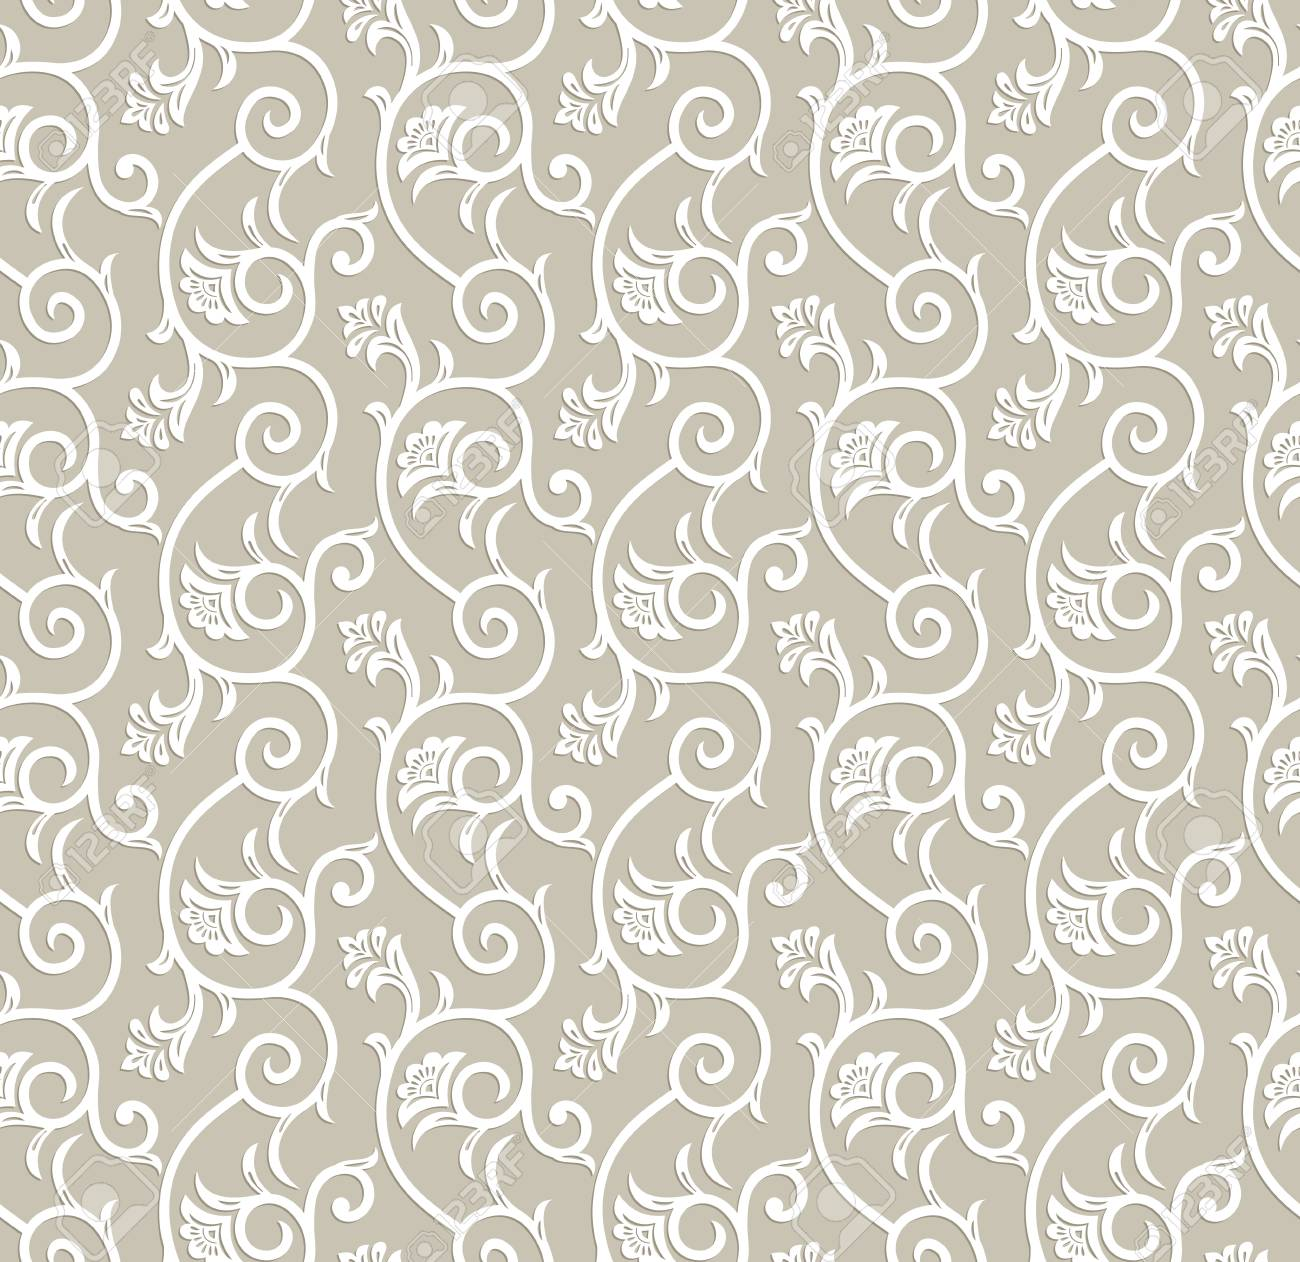 Seamless Traditional Floral Wallpaper Royalty Free Cliparts